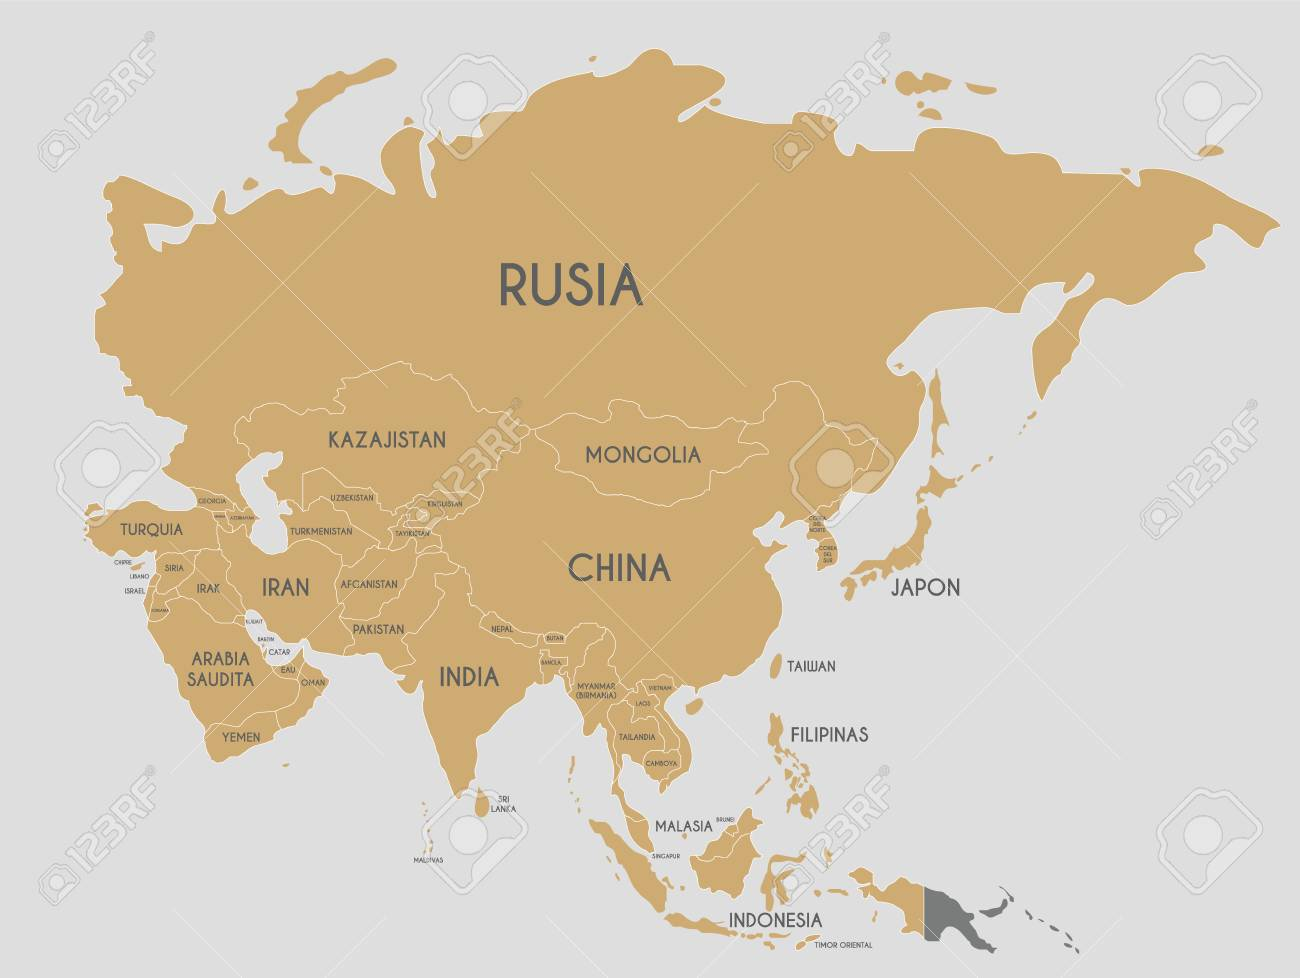 Map Of Asia With Country Names.Political Asia Map Vector Illustration With Country Names In